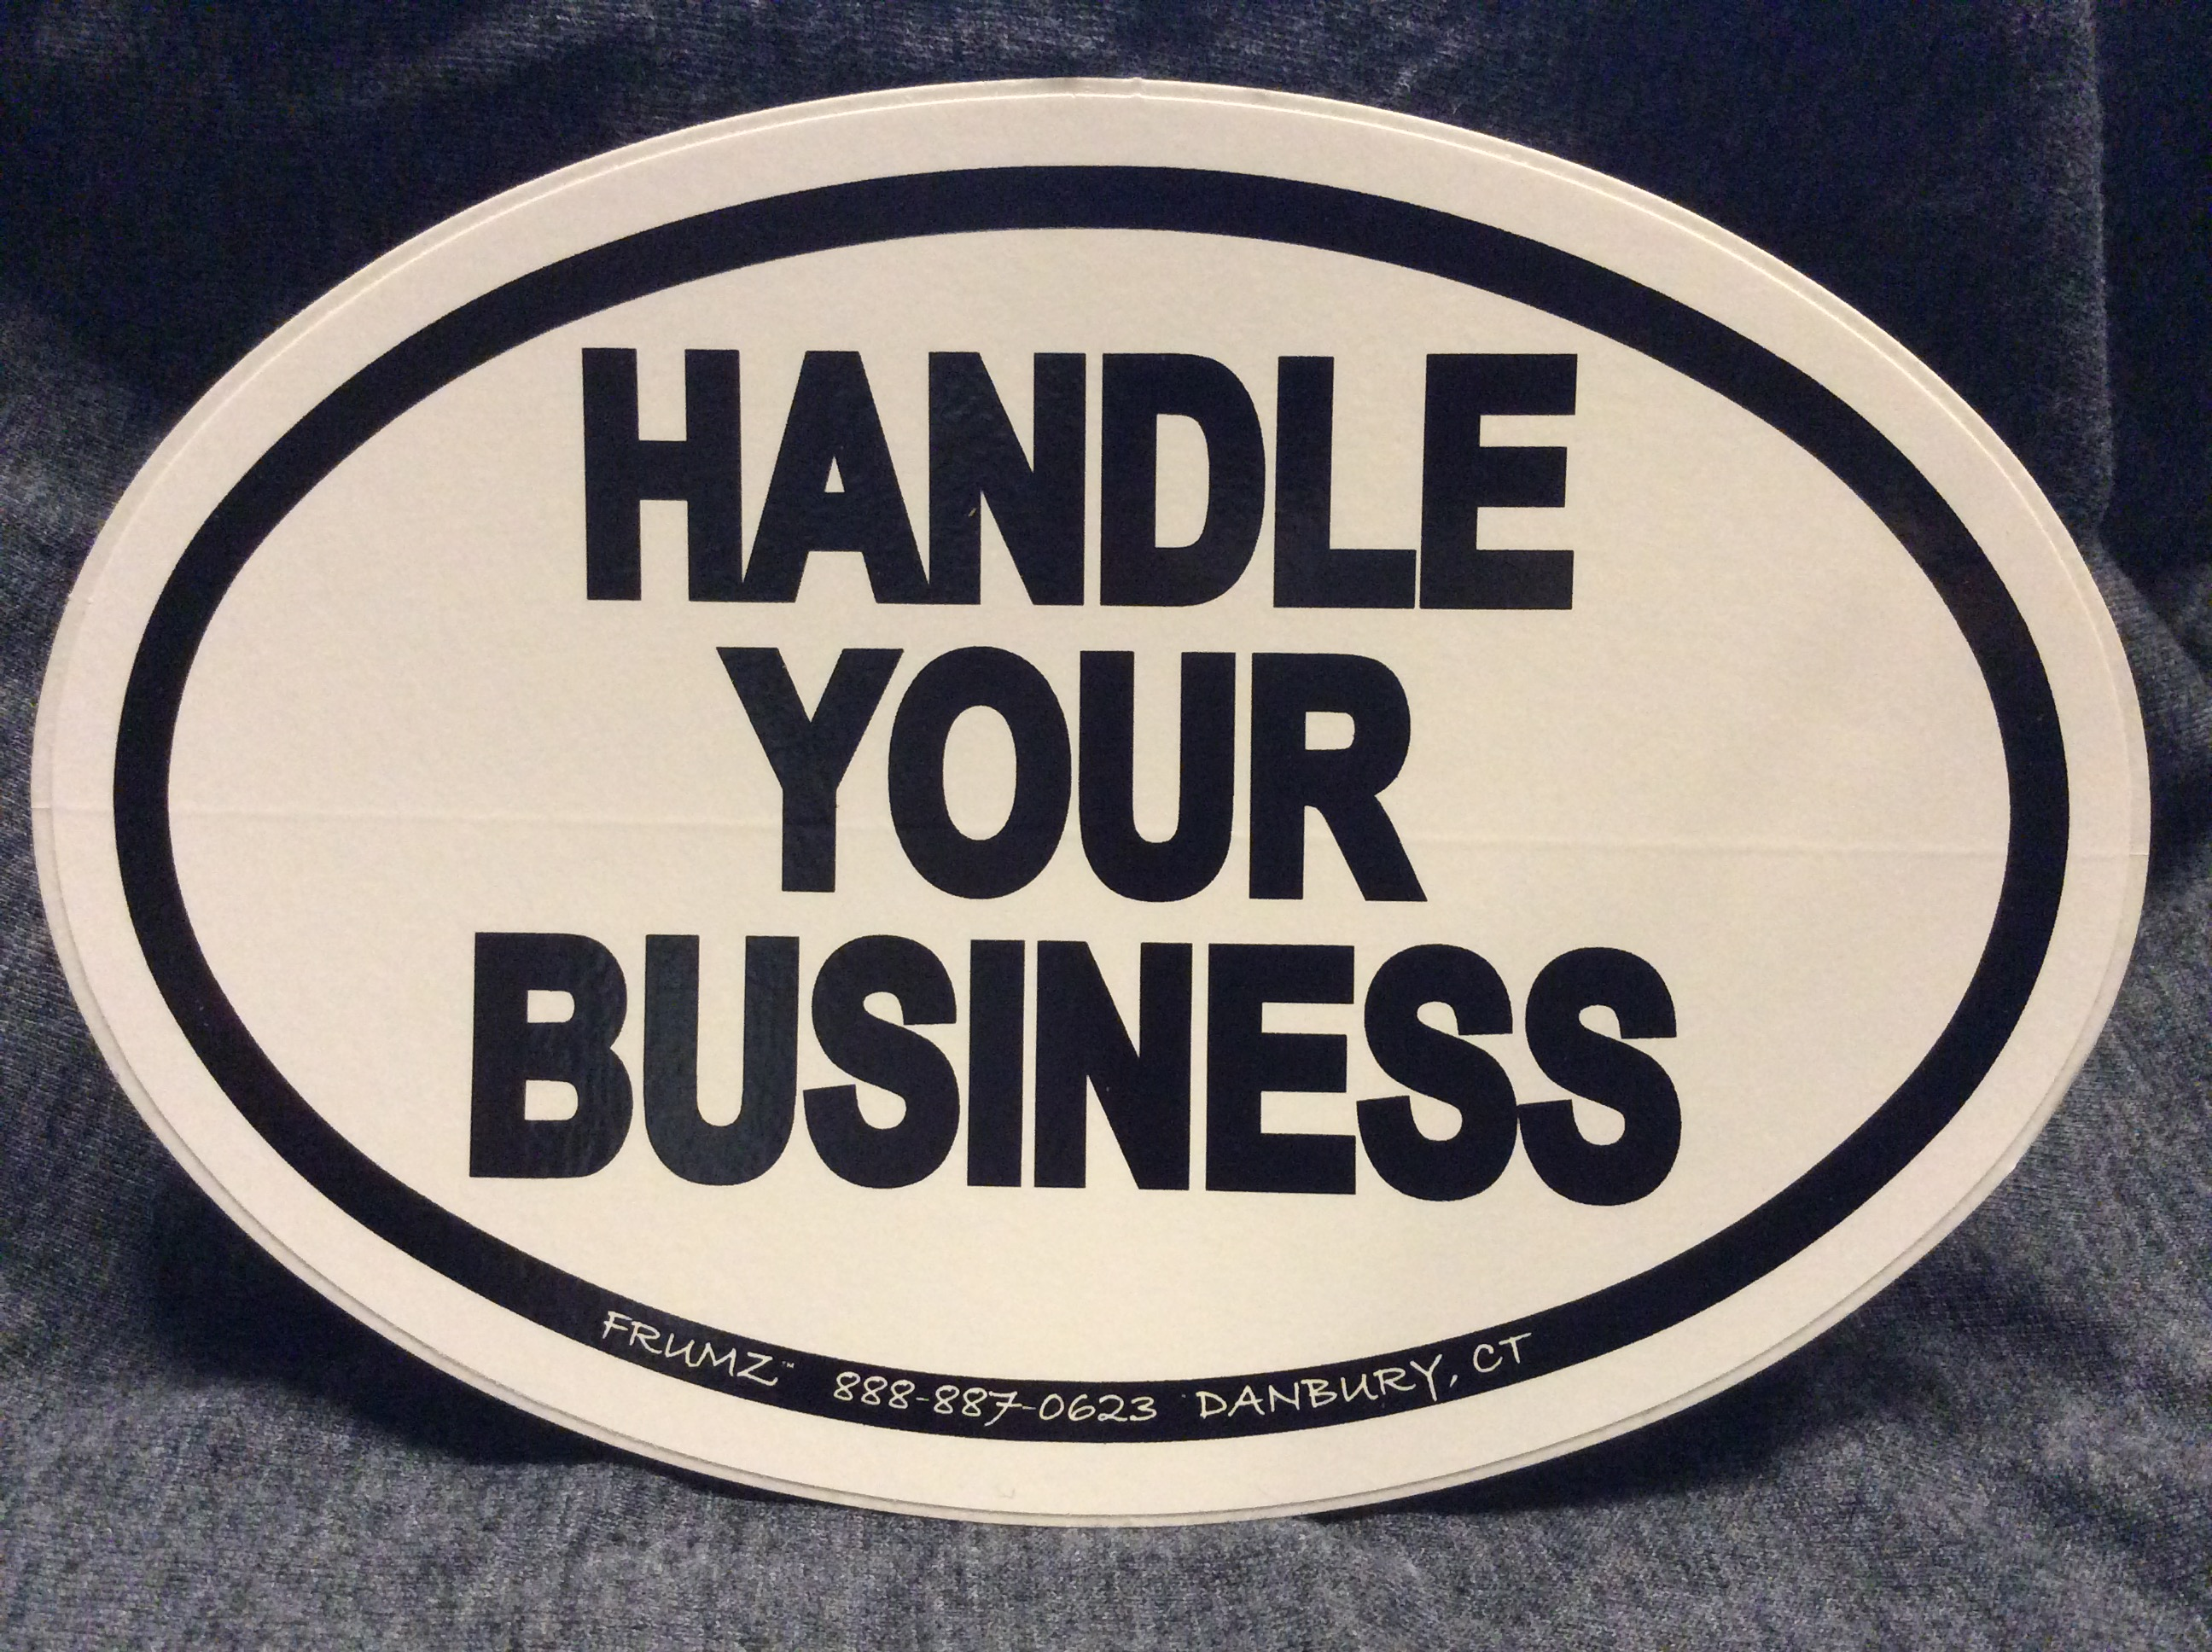 HANDLE YOUR BUSINESS oval sticker decal